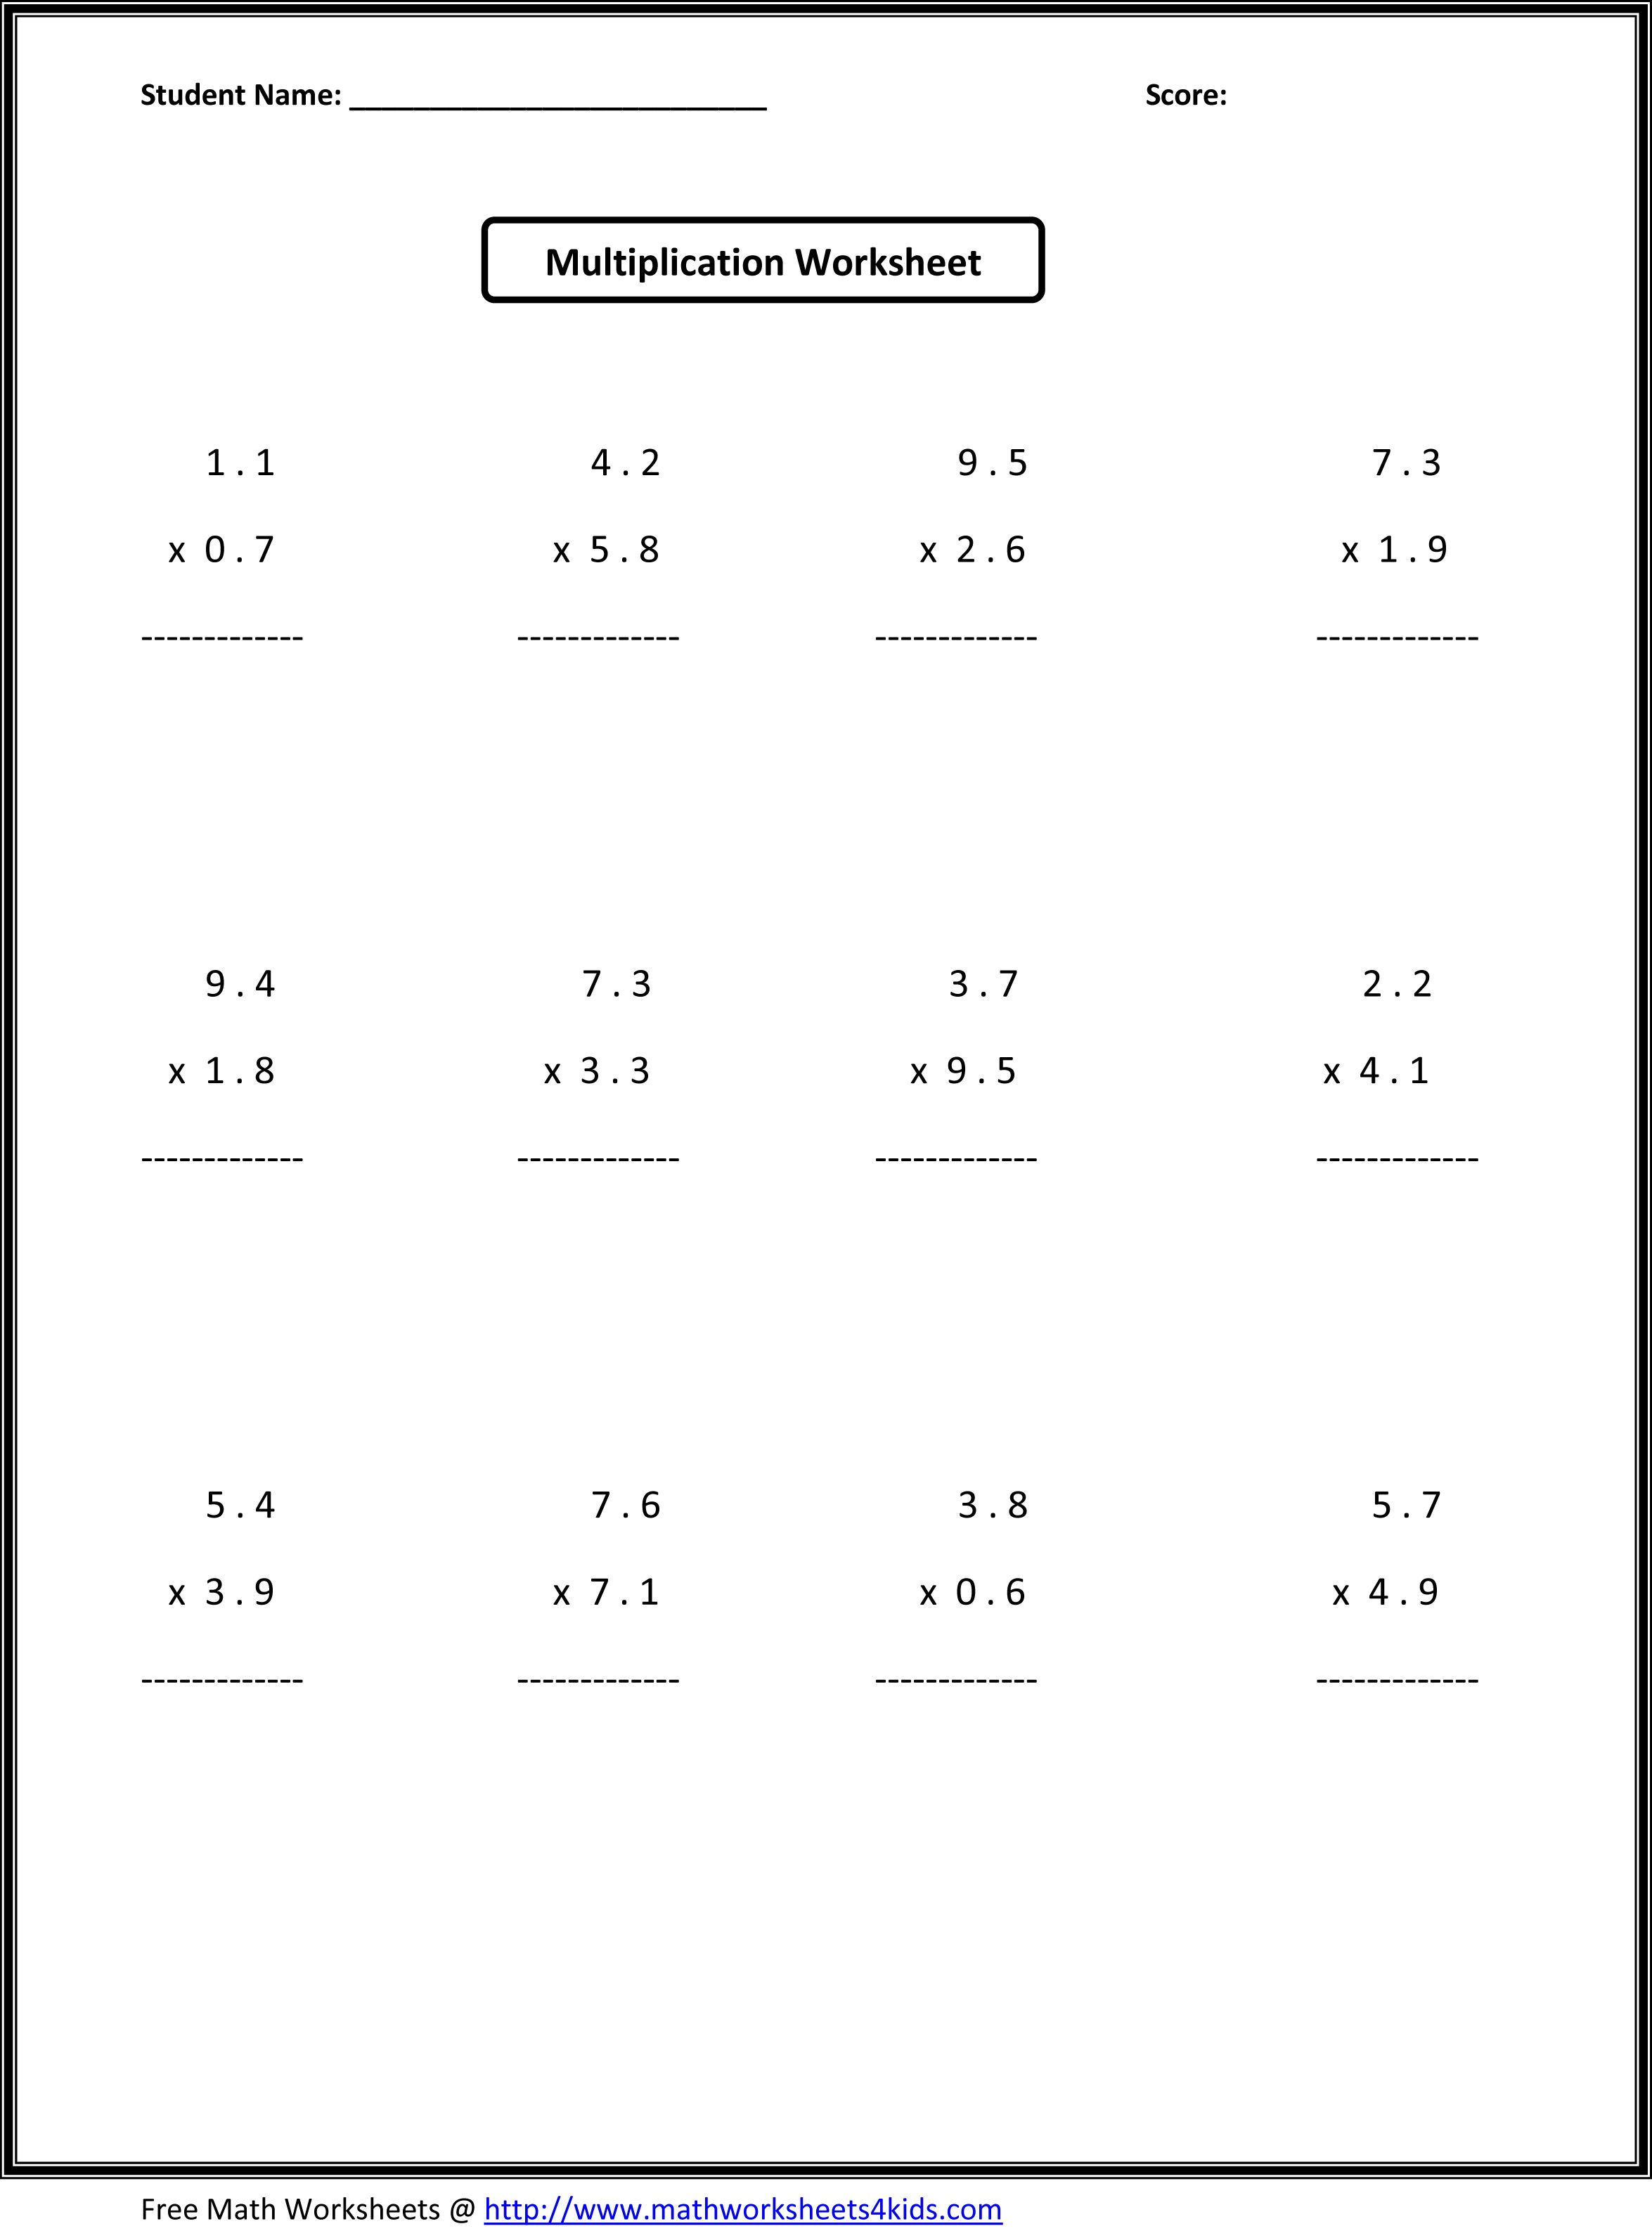 Printables 6th Grade Math Worksheets Fractions 1000 images about math worksheets on pinterest fractions activities and flare